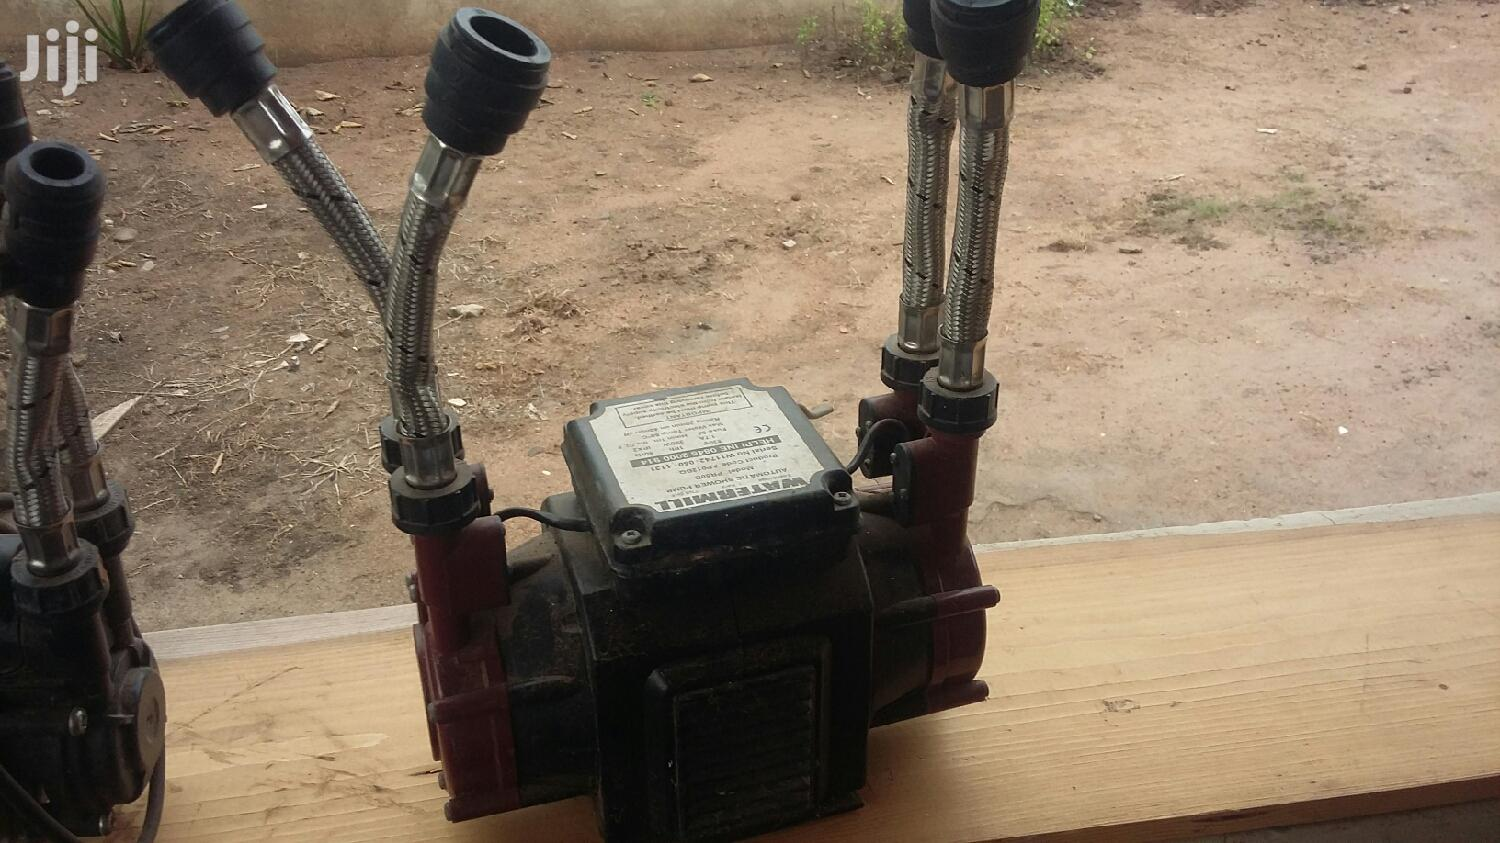 Water Pump Hot And Cold | Plumbing & Water Supply for sale in Achimota, Greater Accra, Ghana